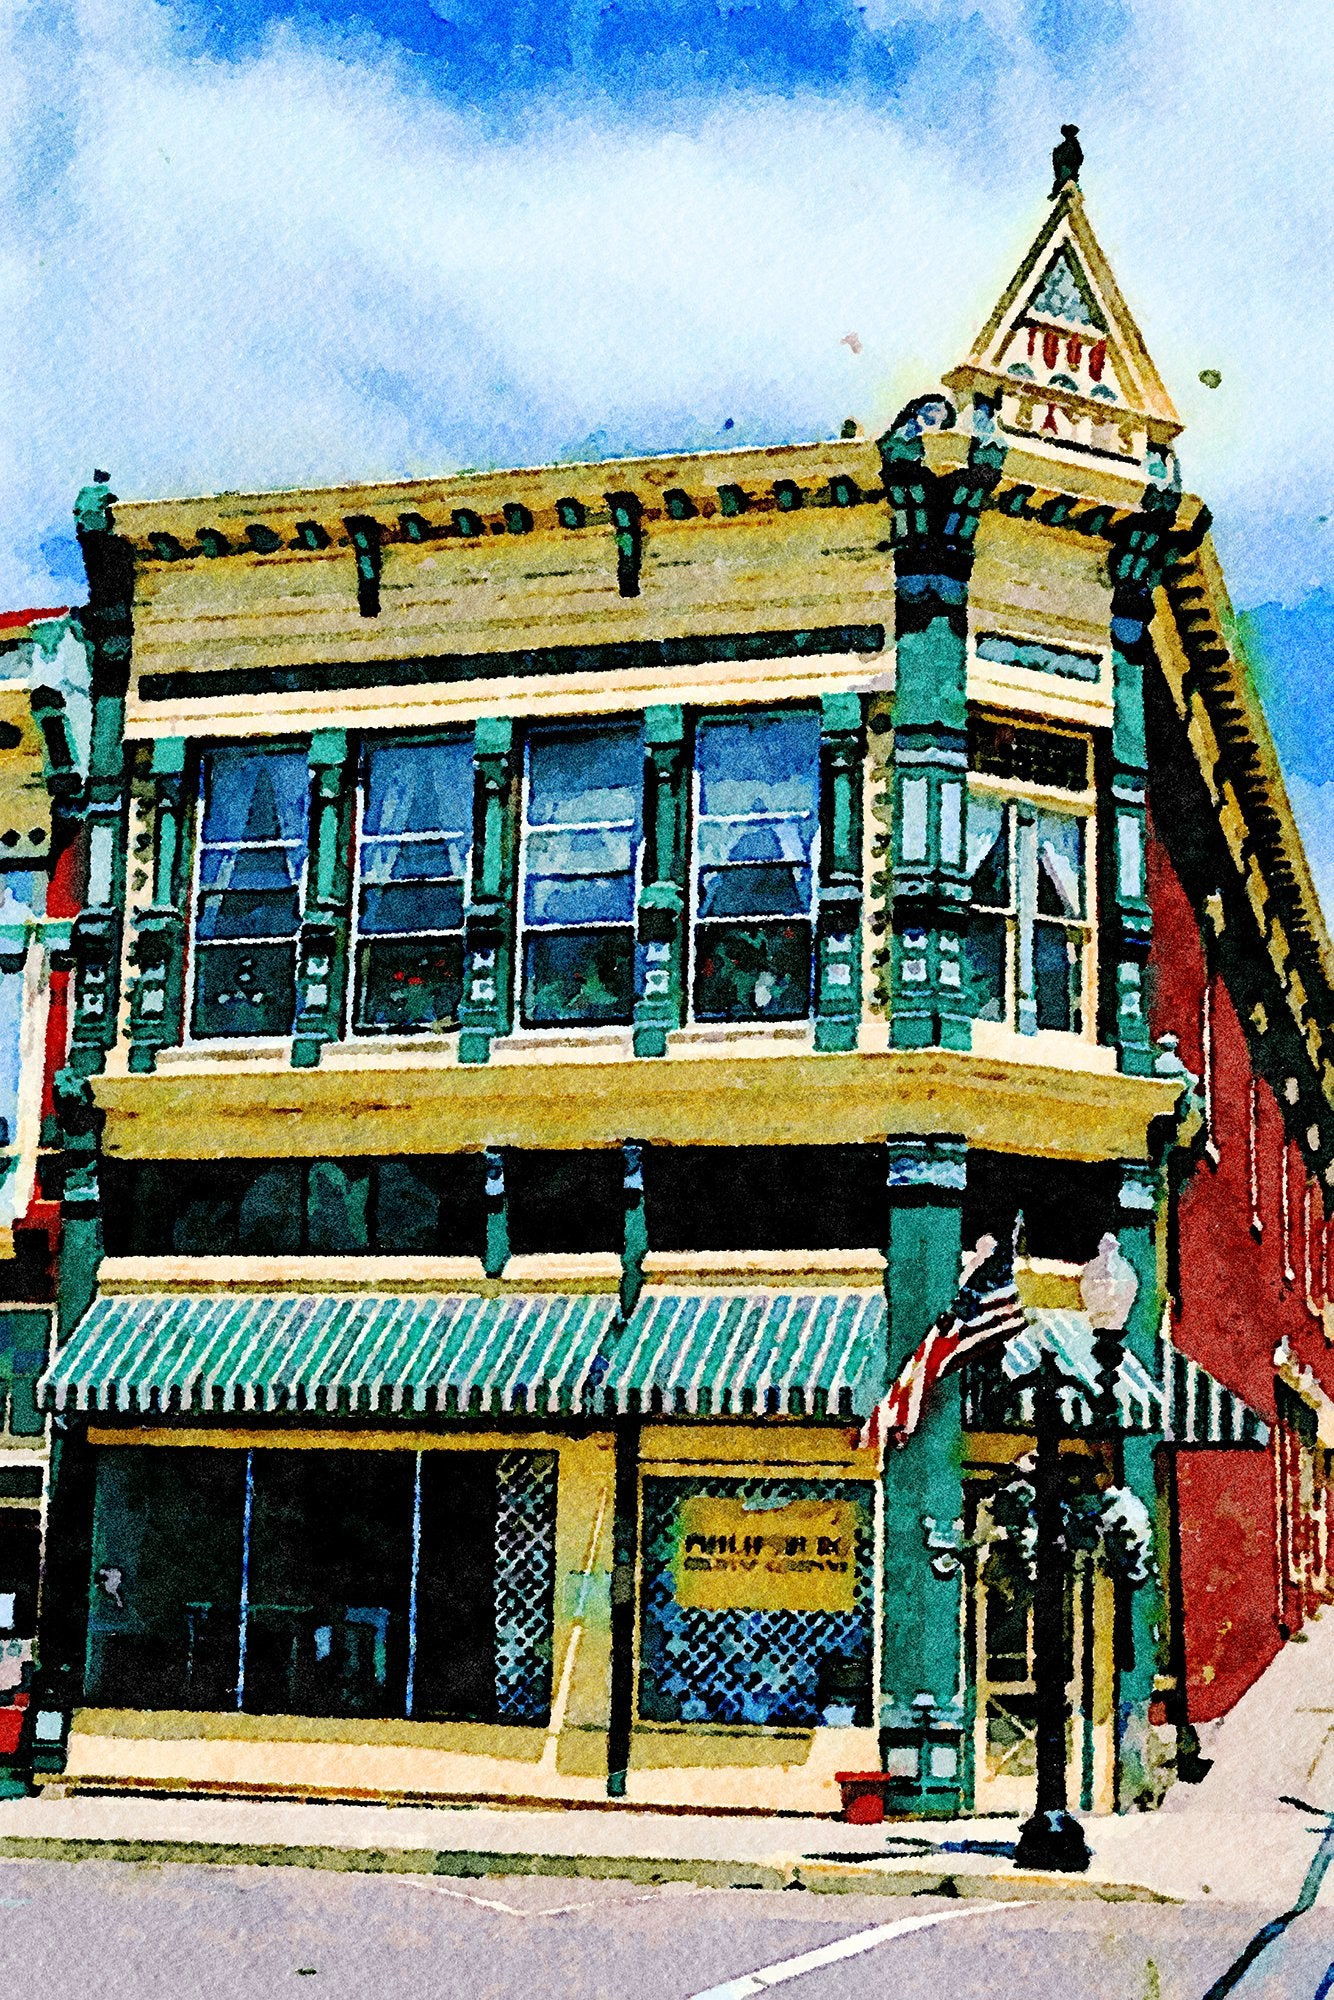 Sayrs Building, 1896, Broadway, Philipsburg, Montana, Reworked, Series 1